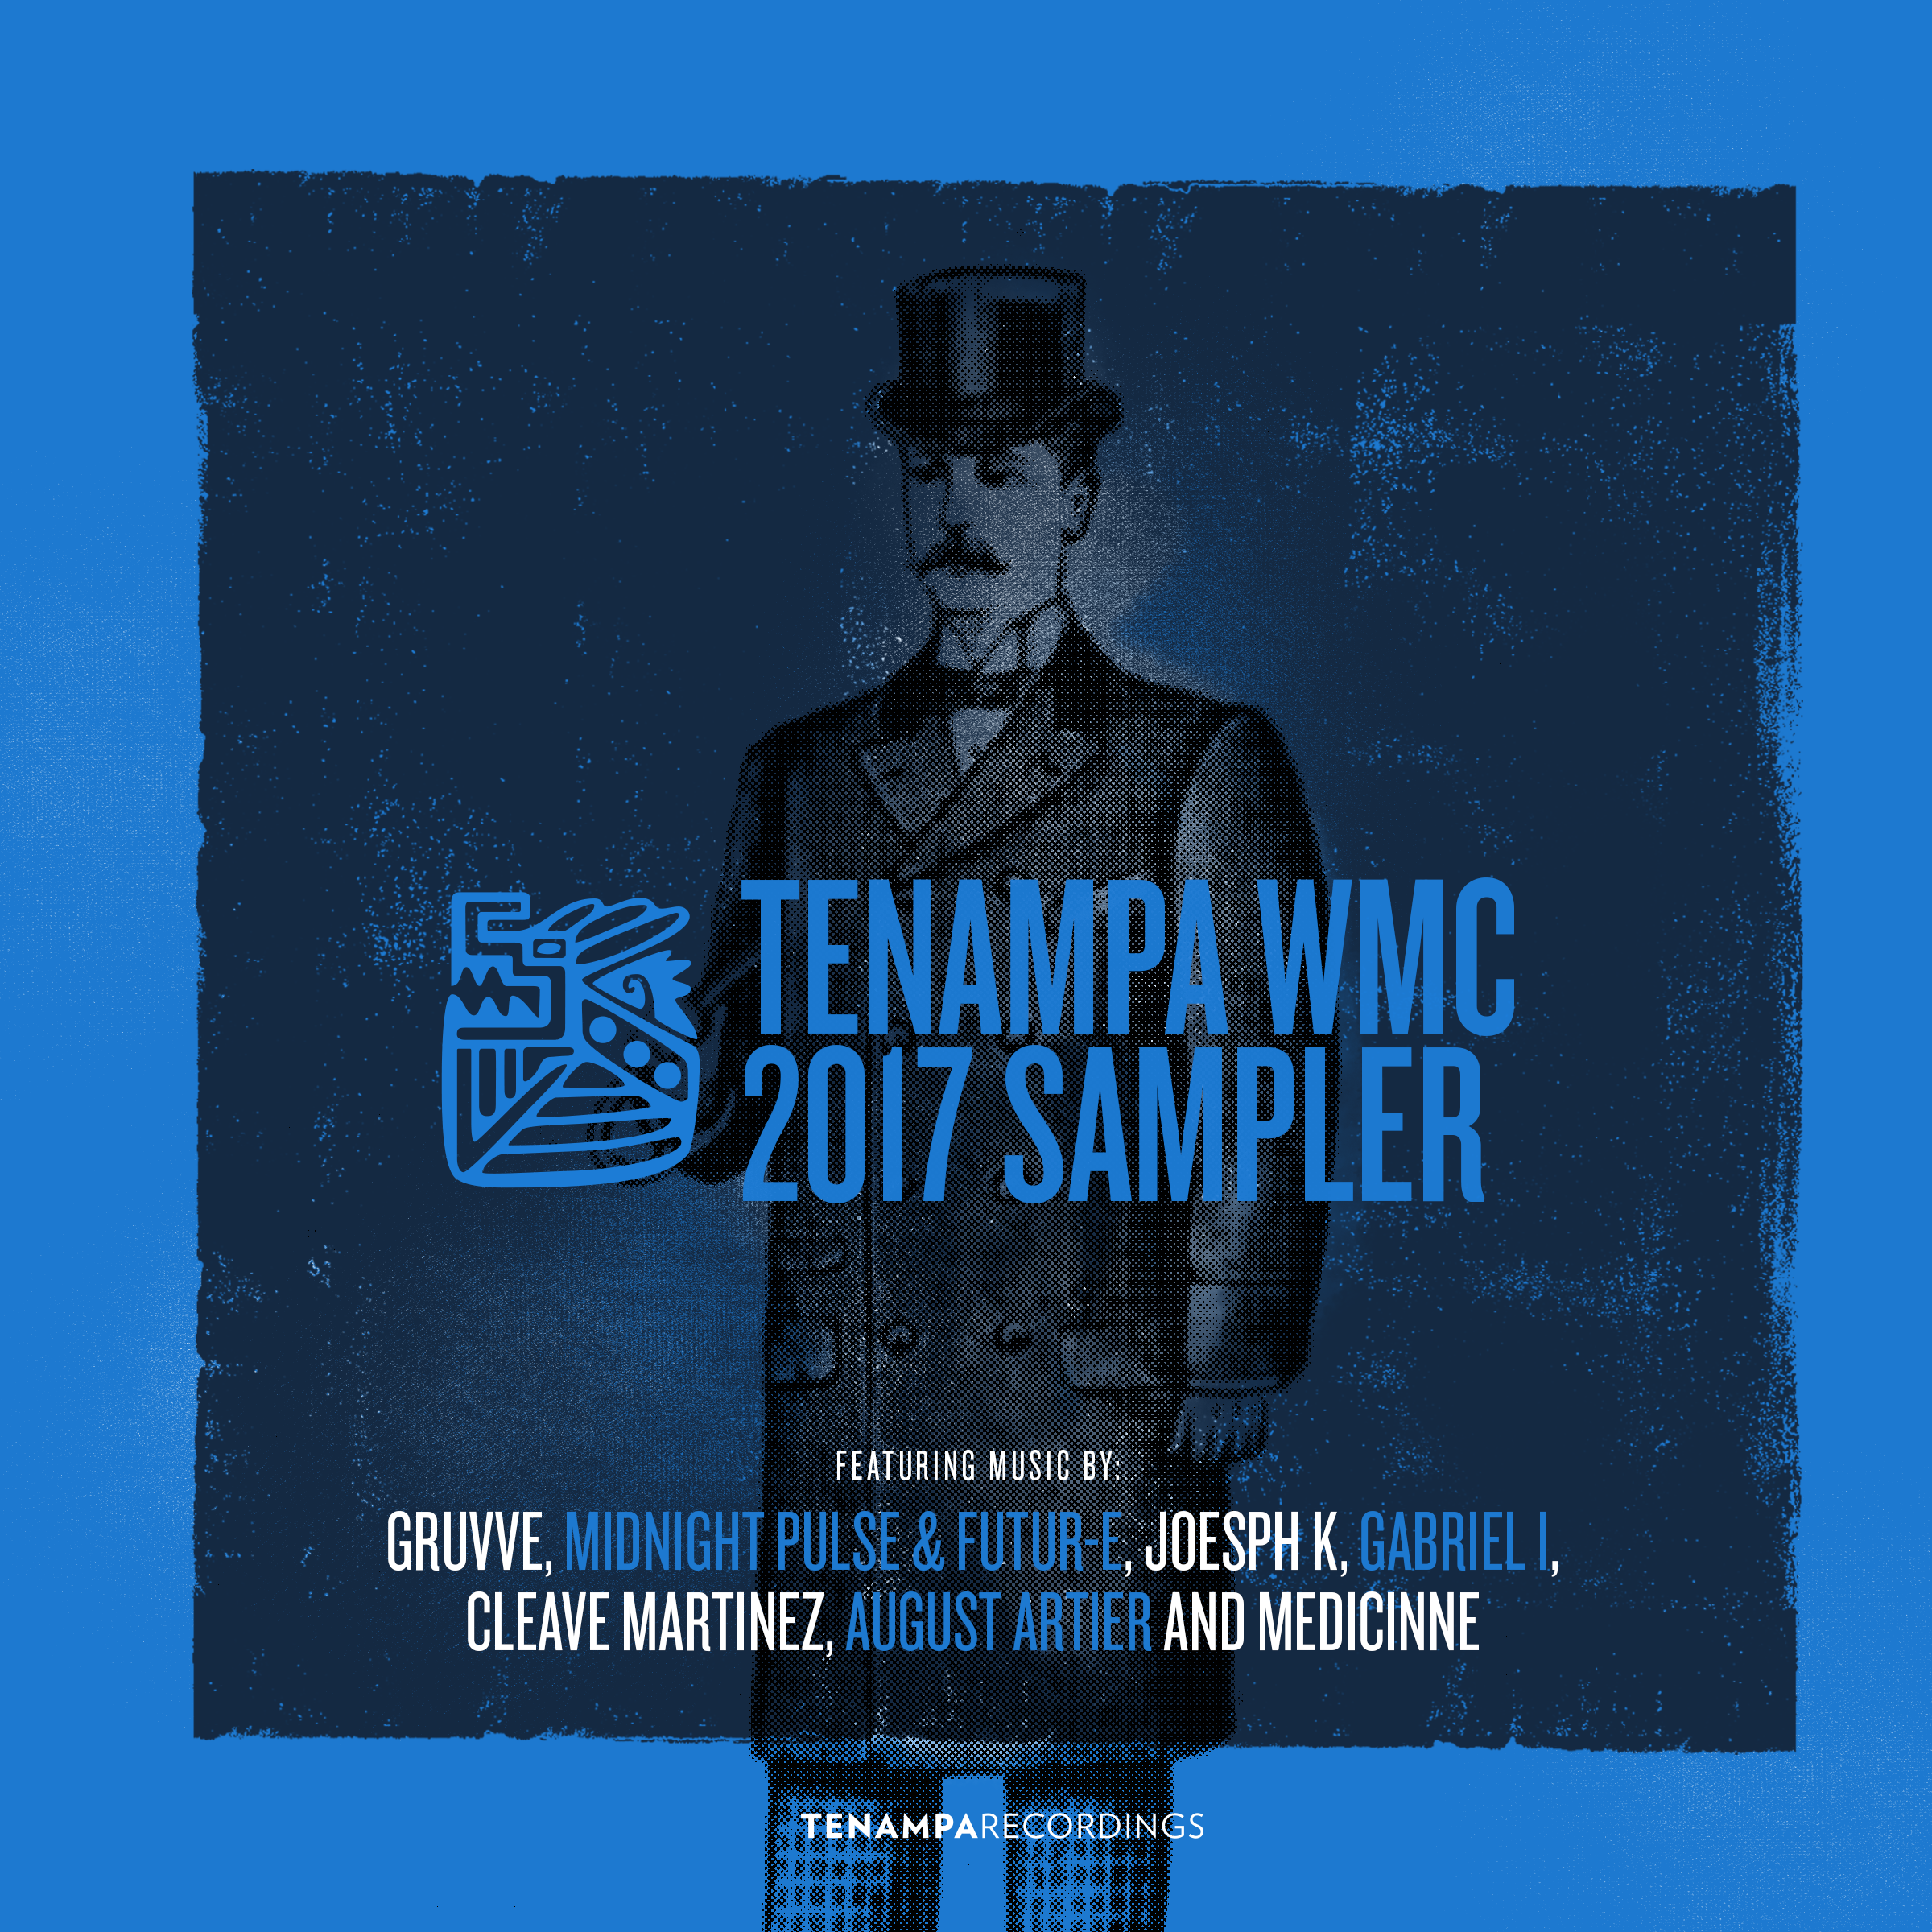 Tenampa WMC 2017 Sampler – Album Artwork